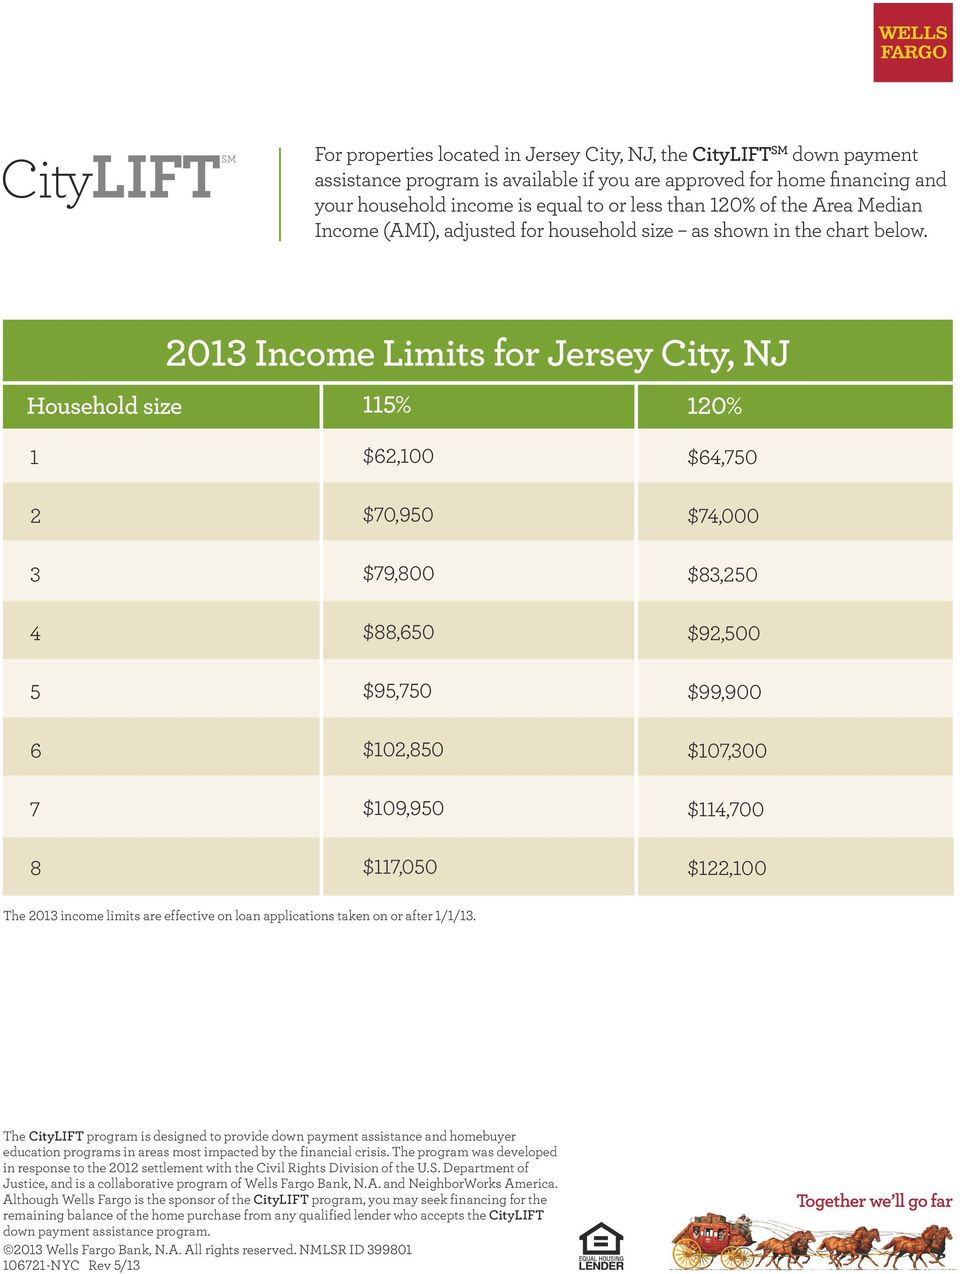 2013 Income Limits for Jersey City, NJ Household size 1 $62,100 $64,750 2 $70,950 $74,000 3 $79,800 $83,250 4 $88,650 $92,500 5 $95,750 $99,900 6 $102,850 $107,300 7 $109,950 $114,700 8 $117,050